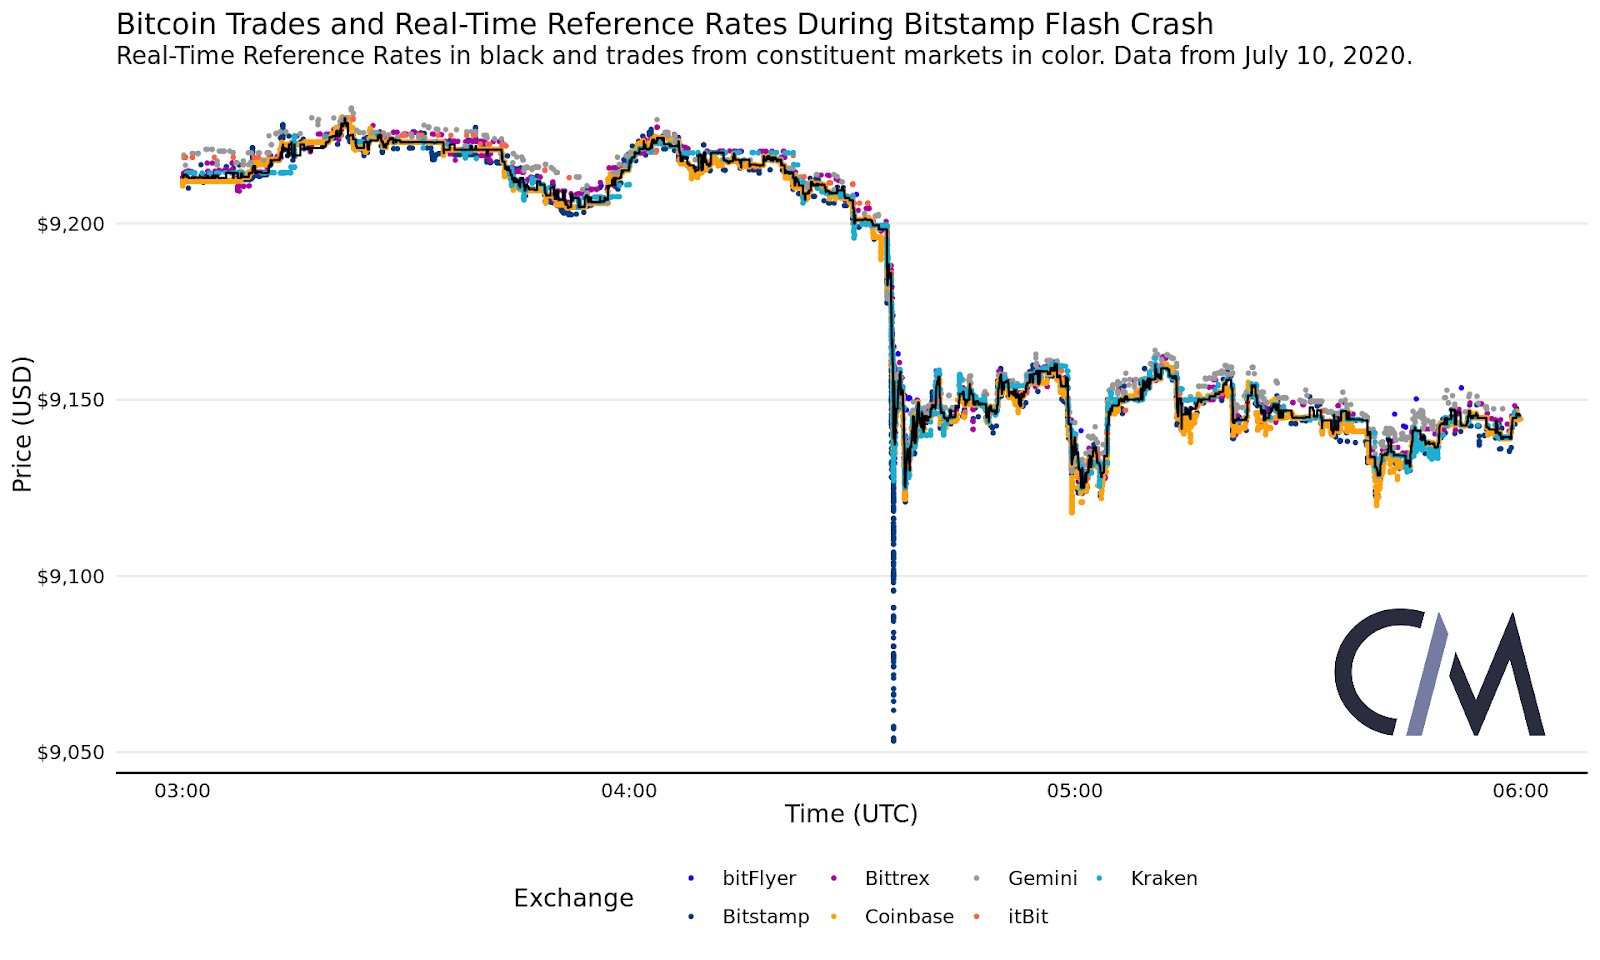 The price of Bitcoin drops lower on Bitstamp than other exchanges on July 10